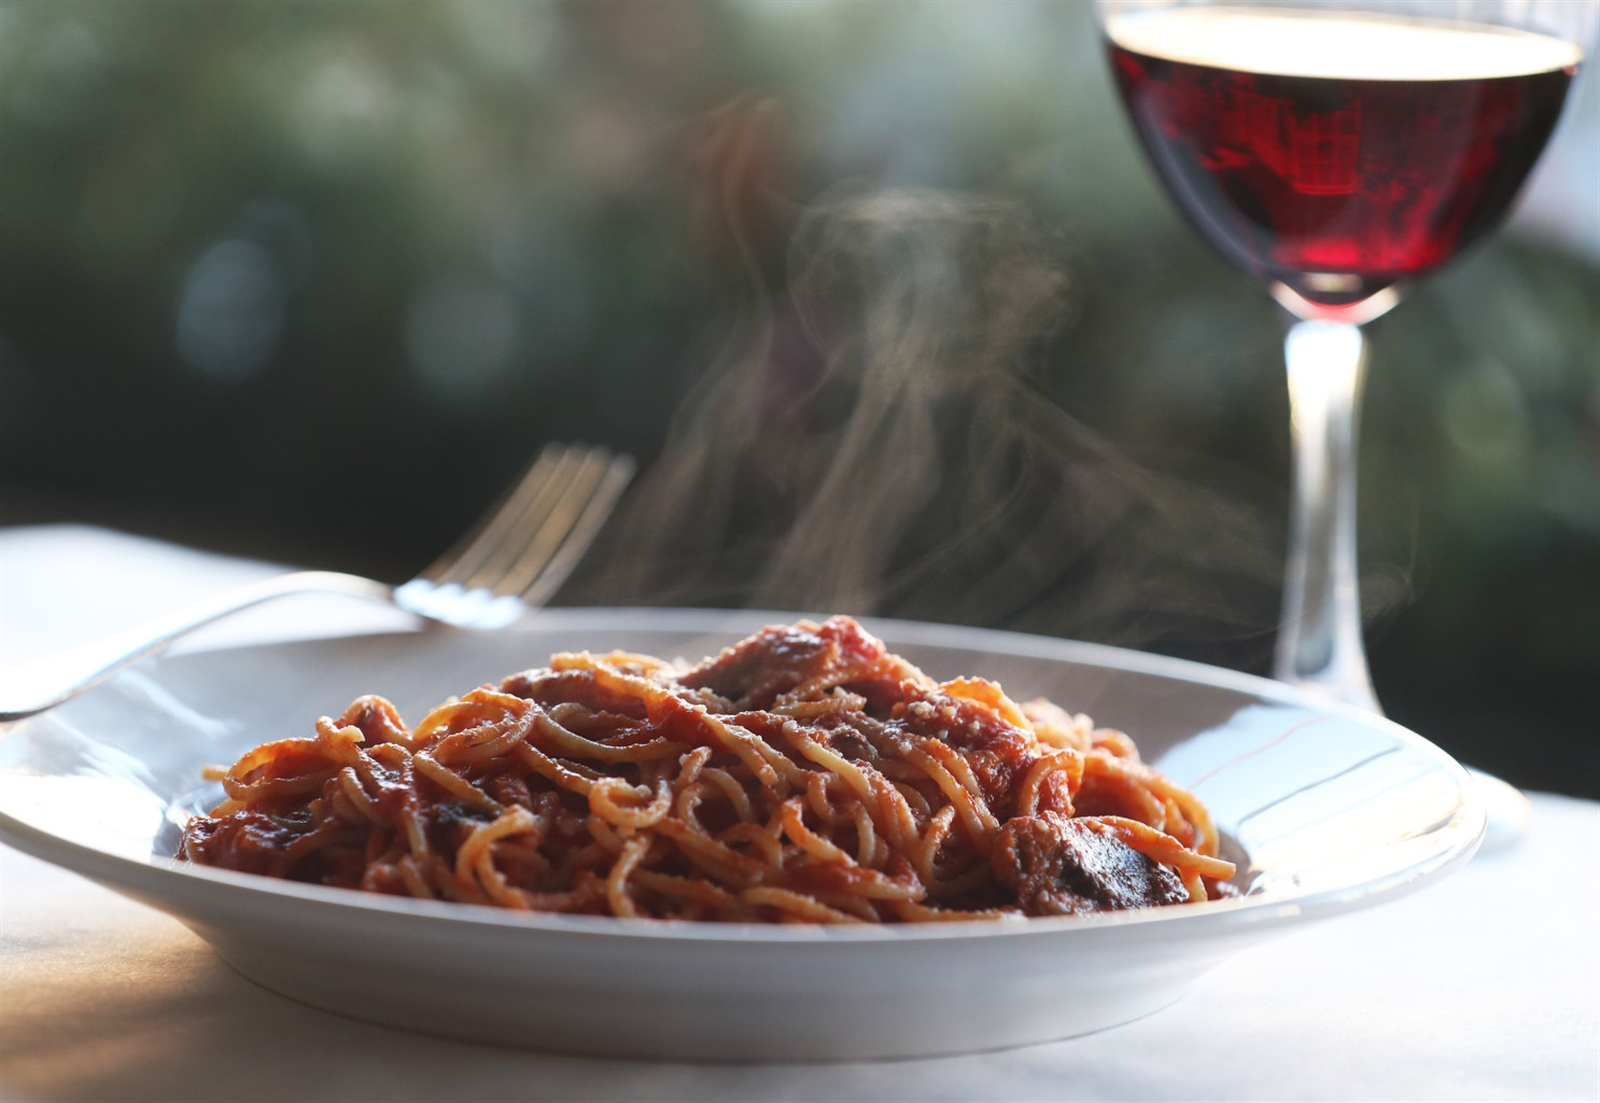 Vino's pasta con sarde is made with sardines, anchovies, olive oil and garlic tossed in a red sauce.